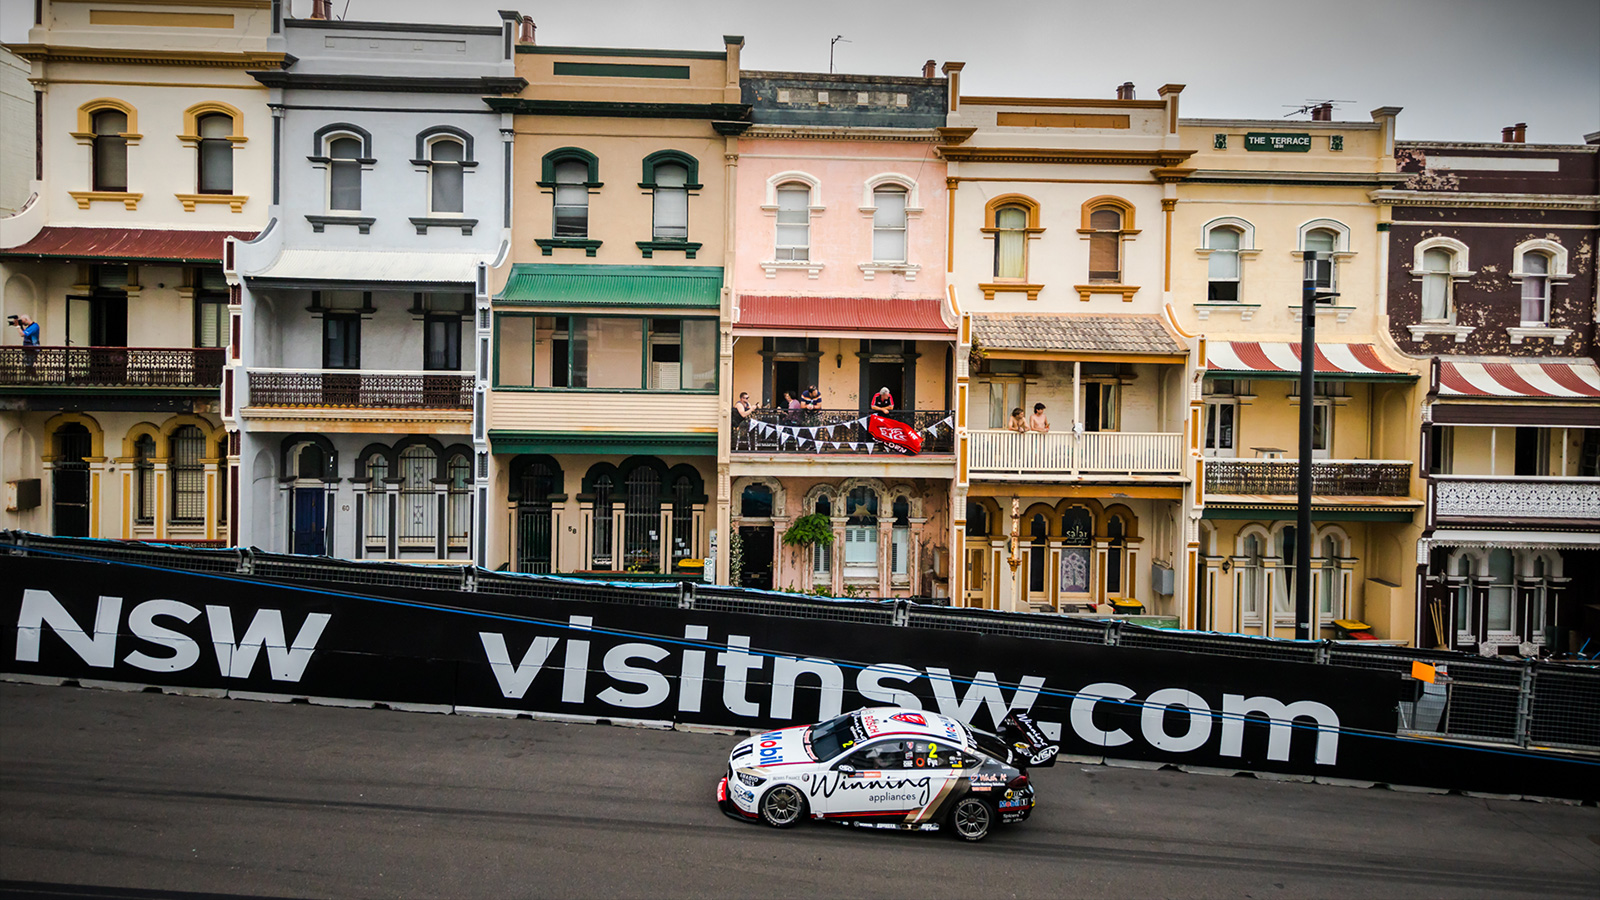 Saturday Debrief: Newcastle 500